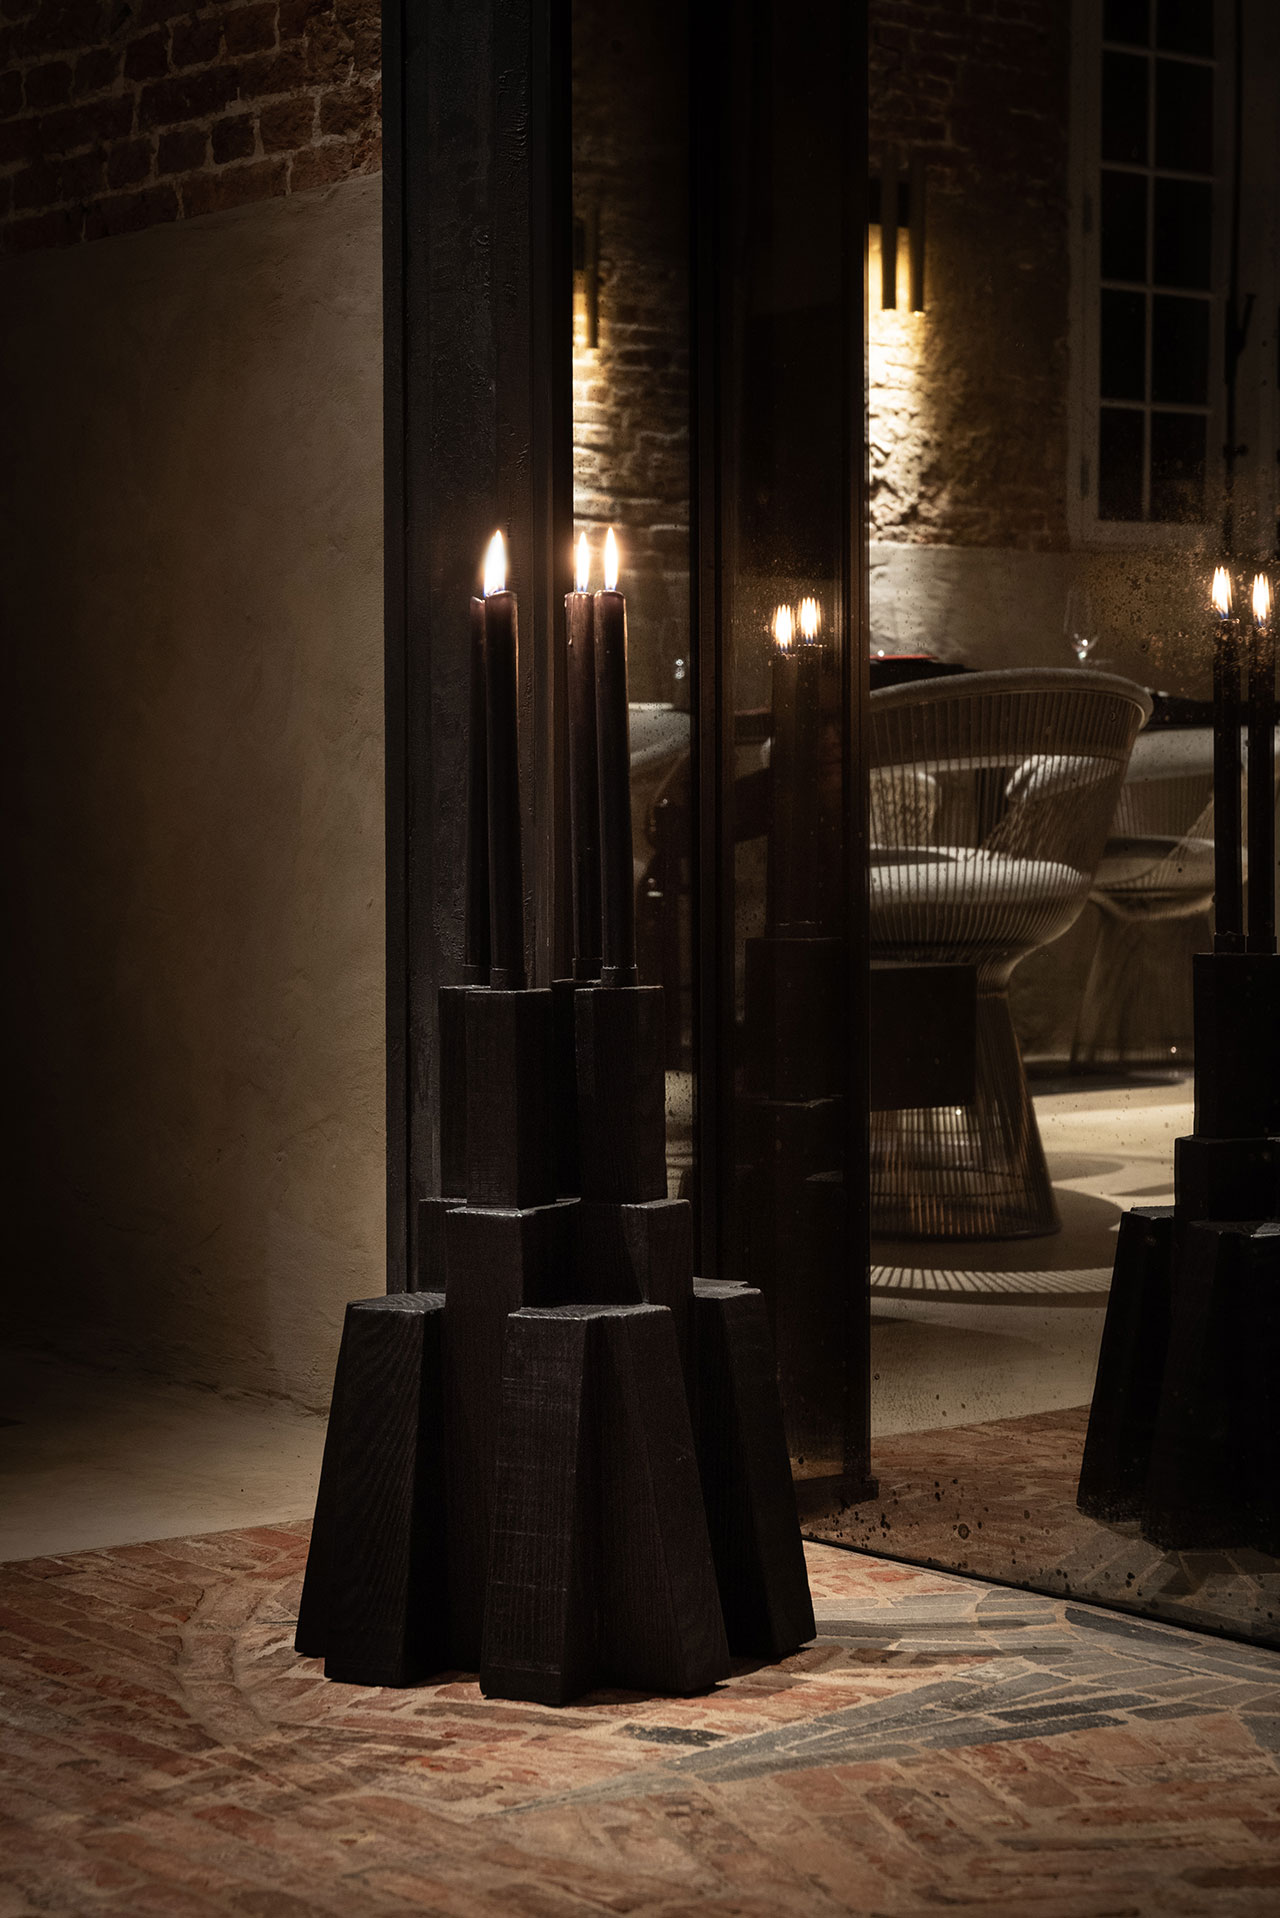 STABLE restaurant designed by Dieter Vander Velpen. Candle holder by Arno De Clerck. Photo by Patricia Goijens.